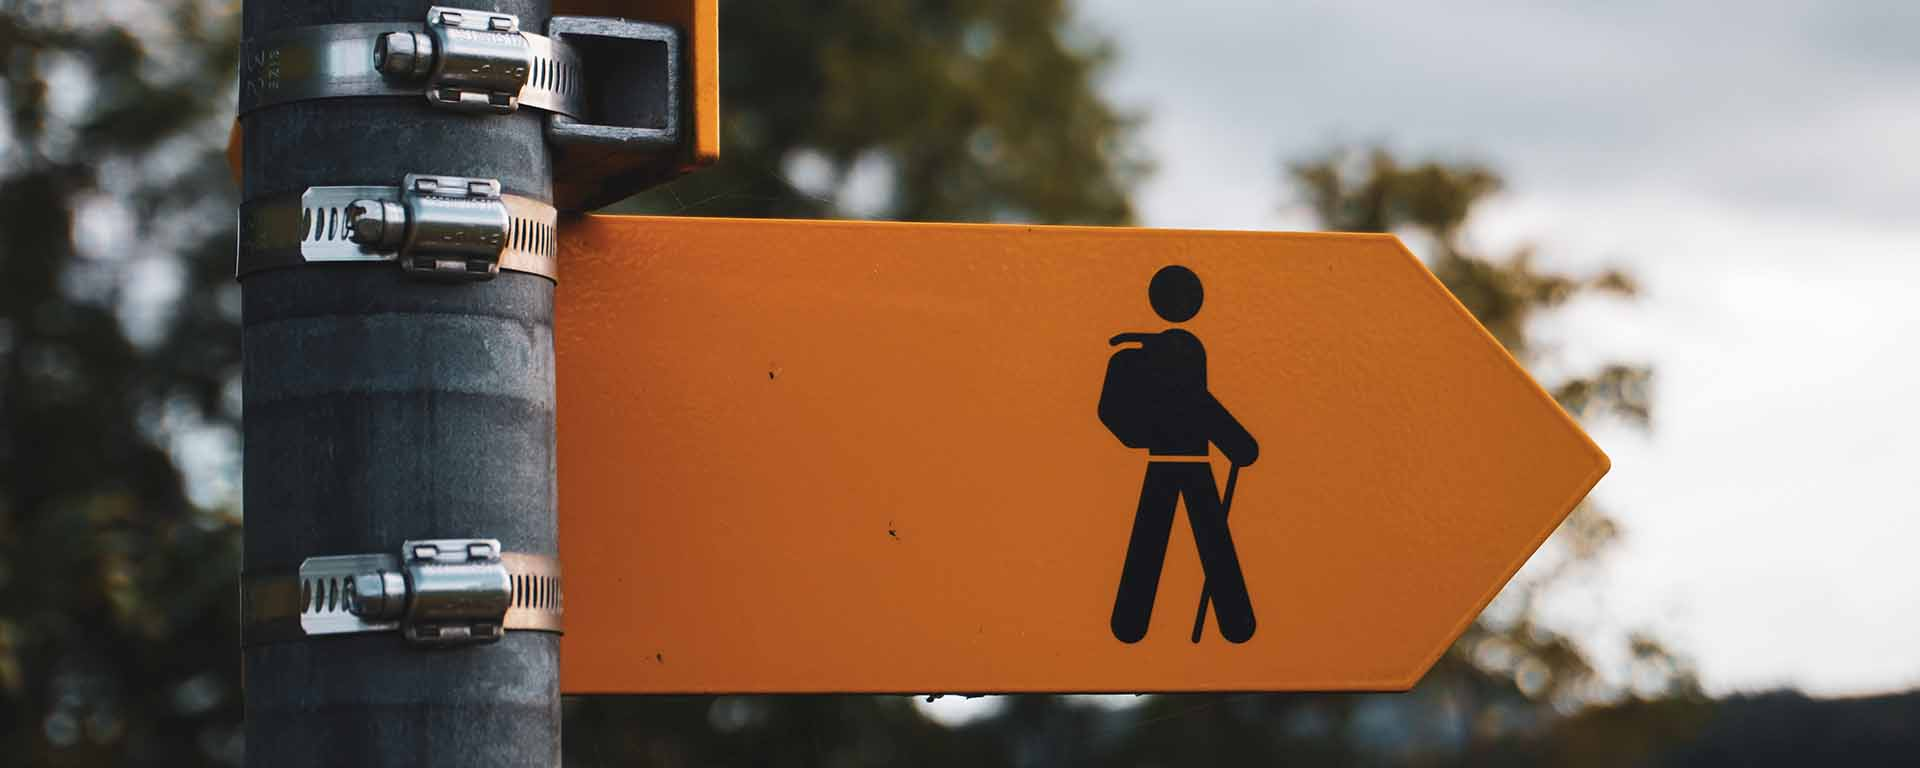 Street sign showing a stick figure person of a hiker